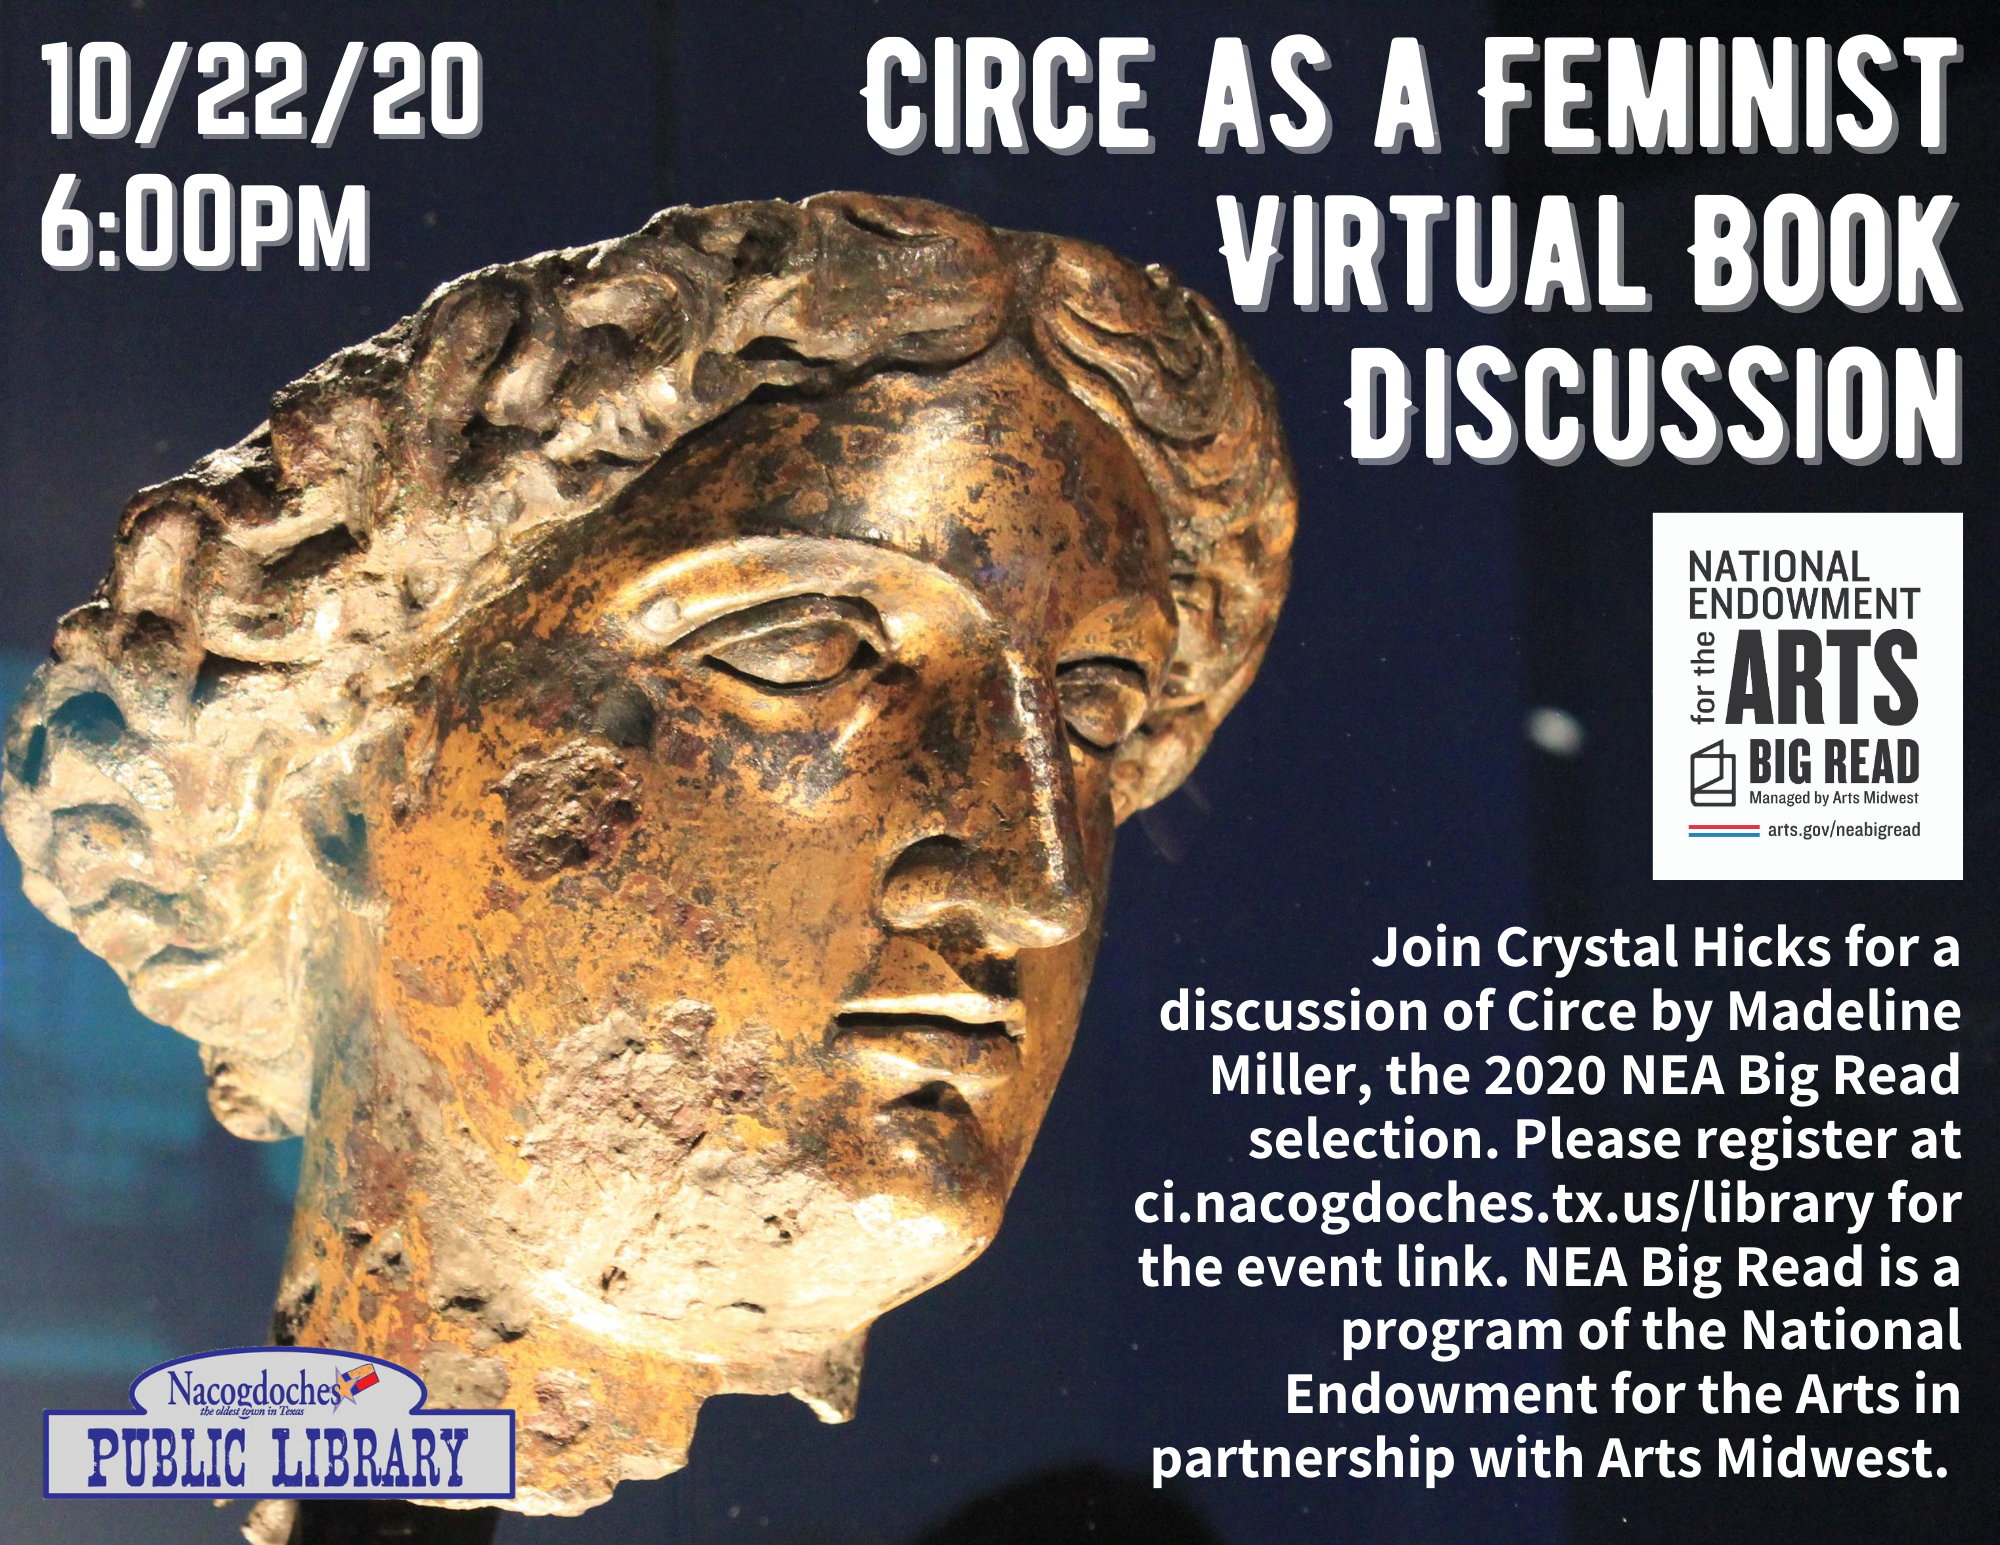 Circe as a Feminist Book Discussion - 10-22-20